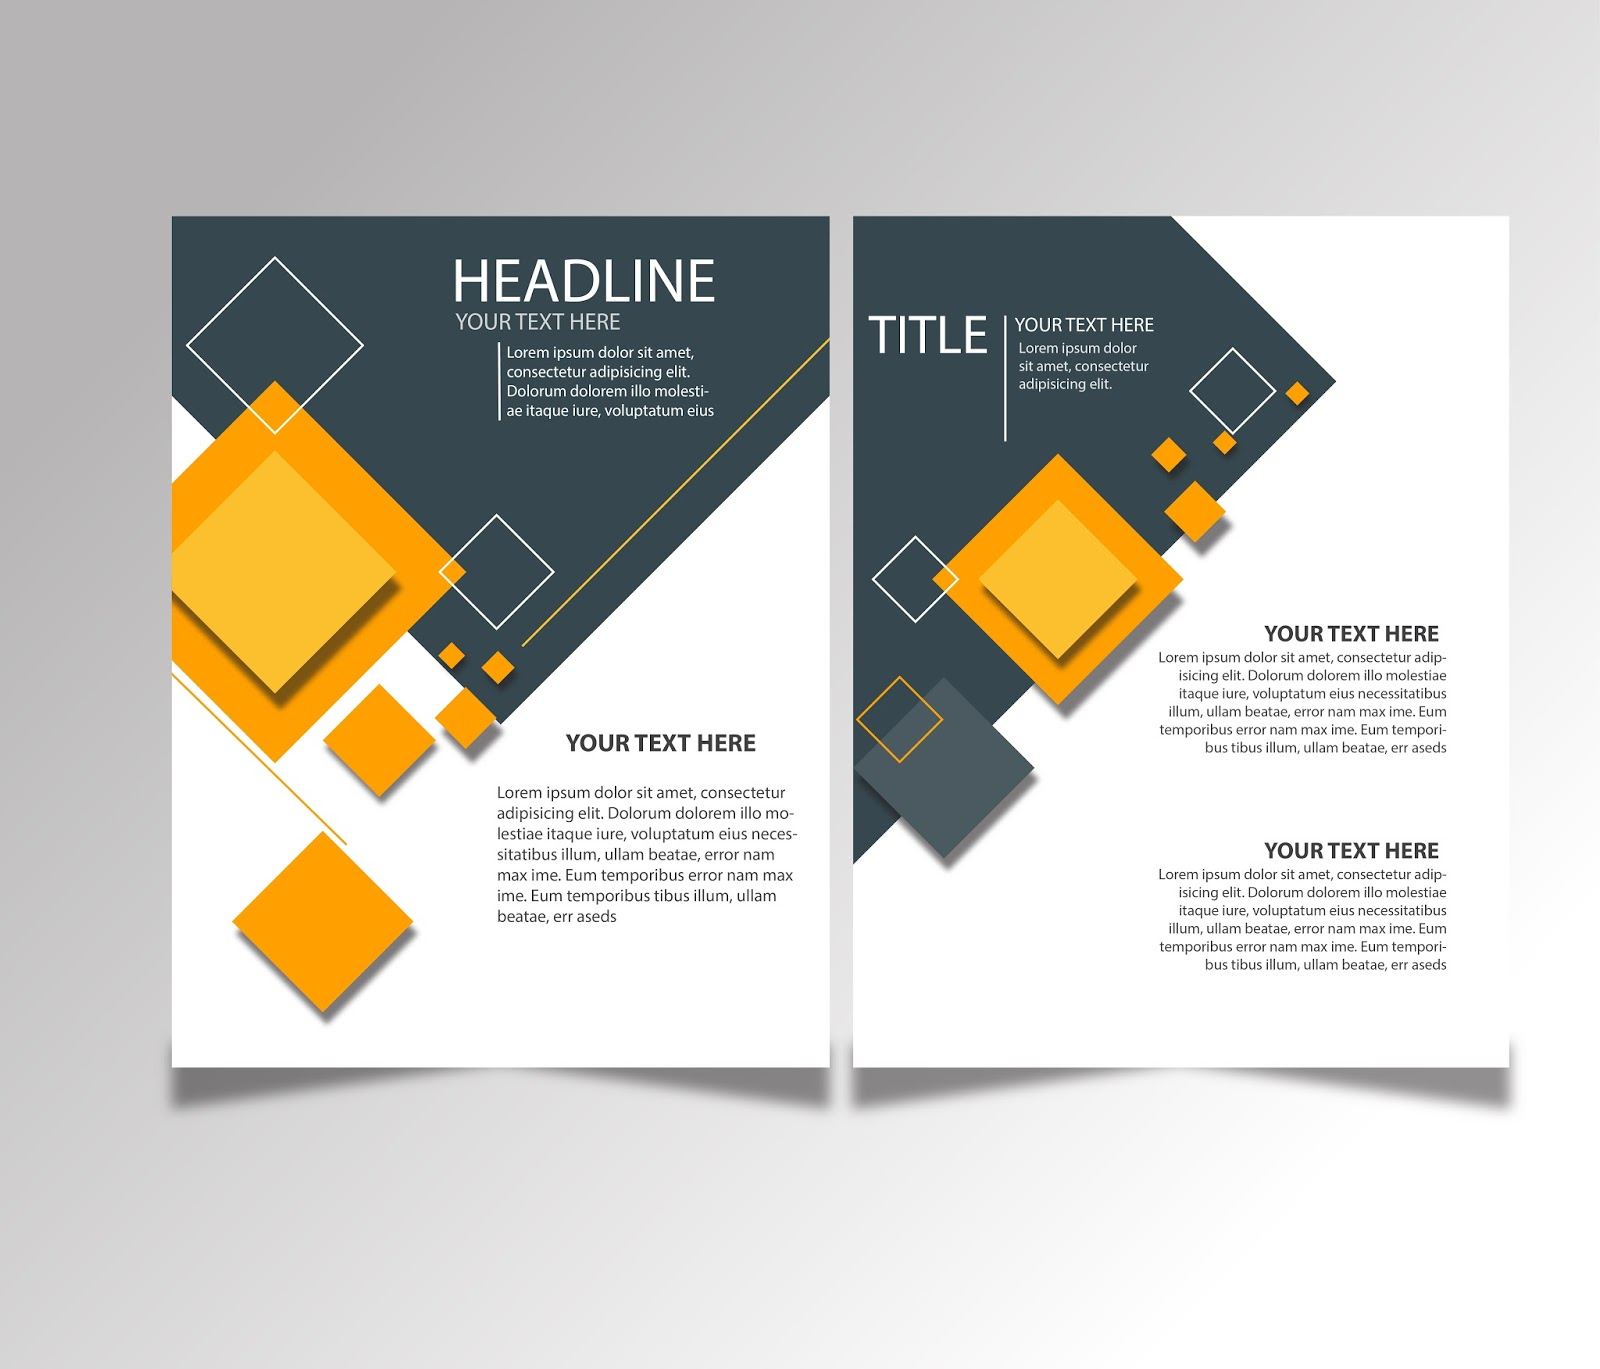 Free Download Brochure Design Templates Ai Files - Ideosprocess Throughout Brochure Templates Ai Free Download